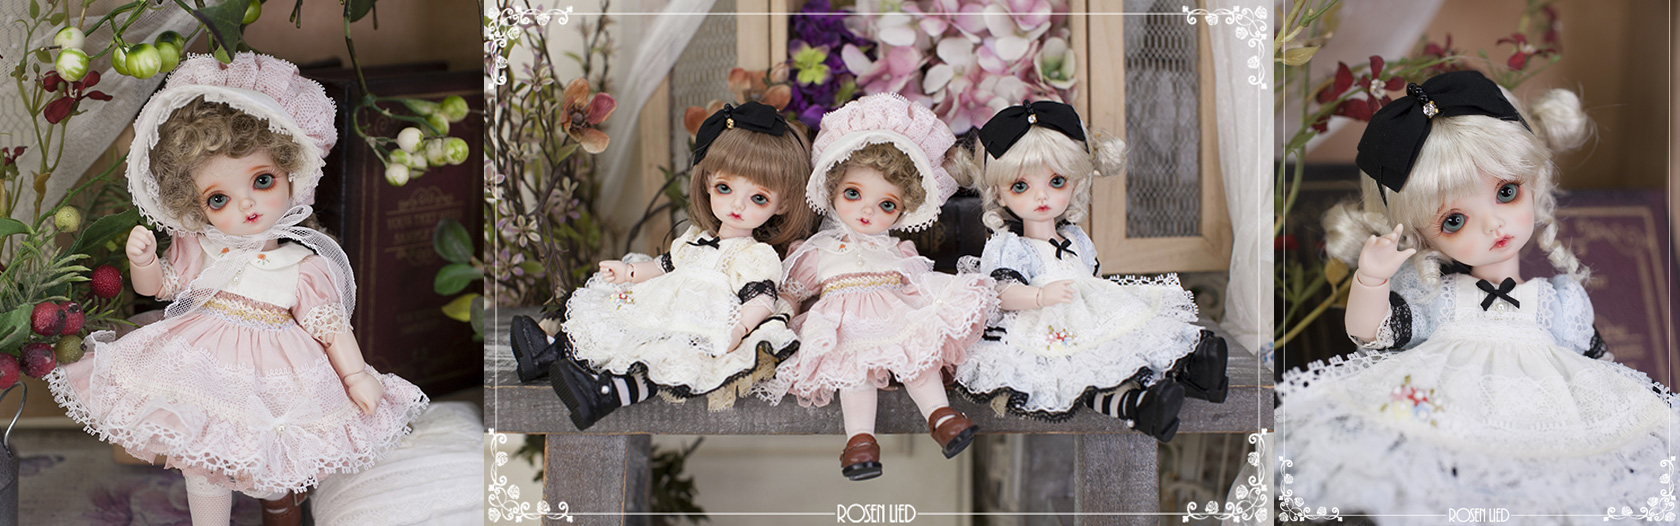 RosenLied - Limited Doll